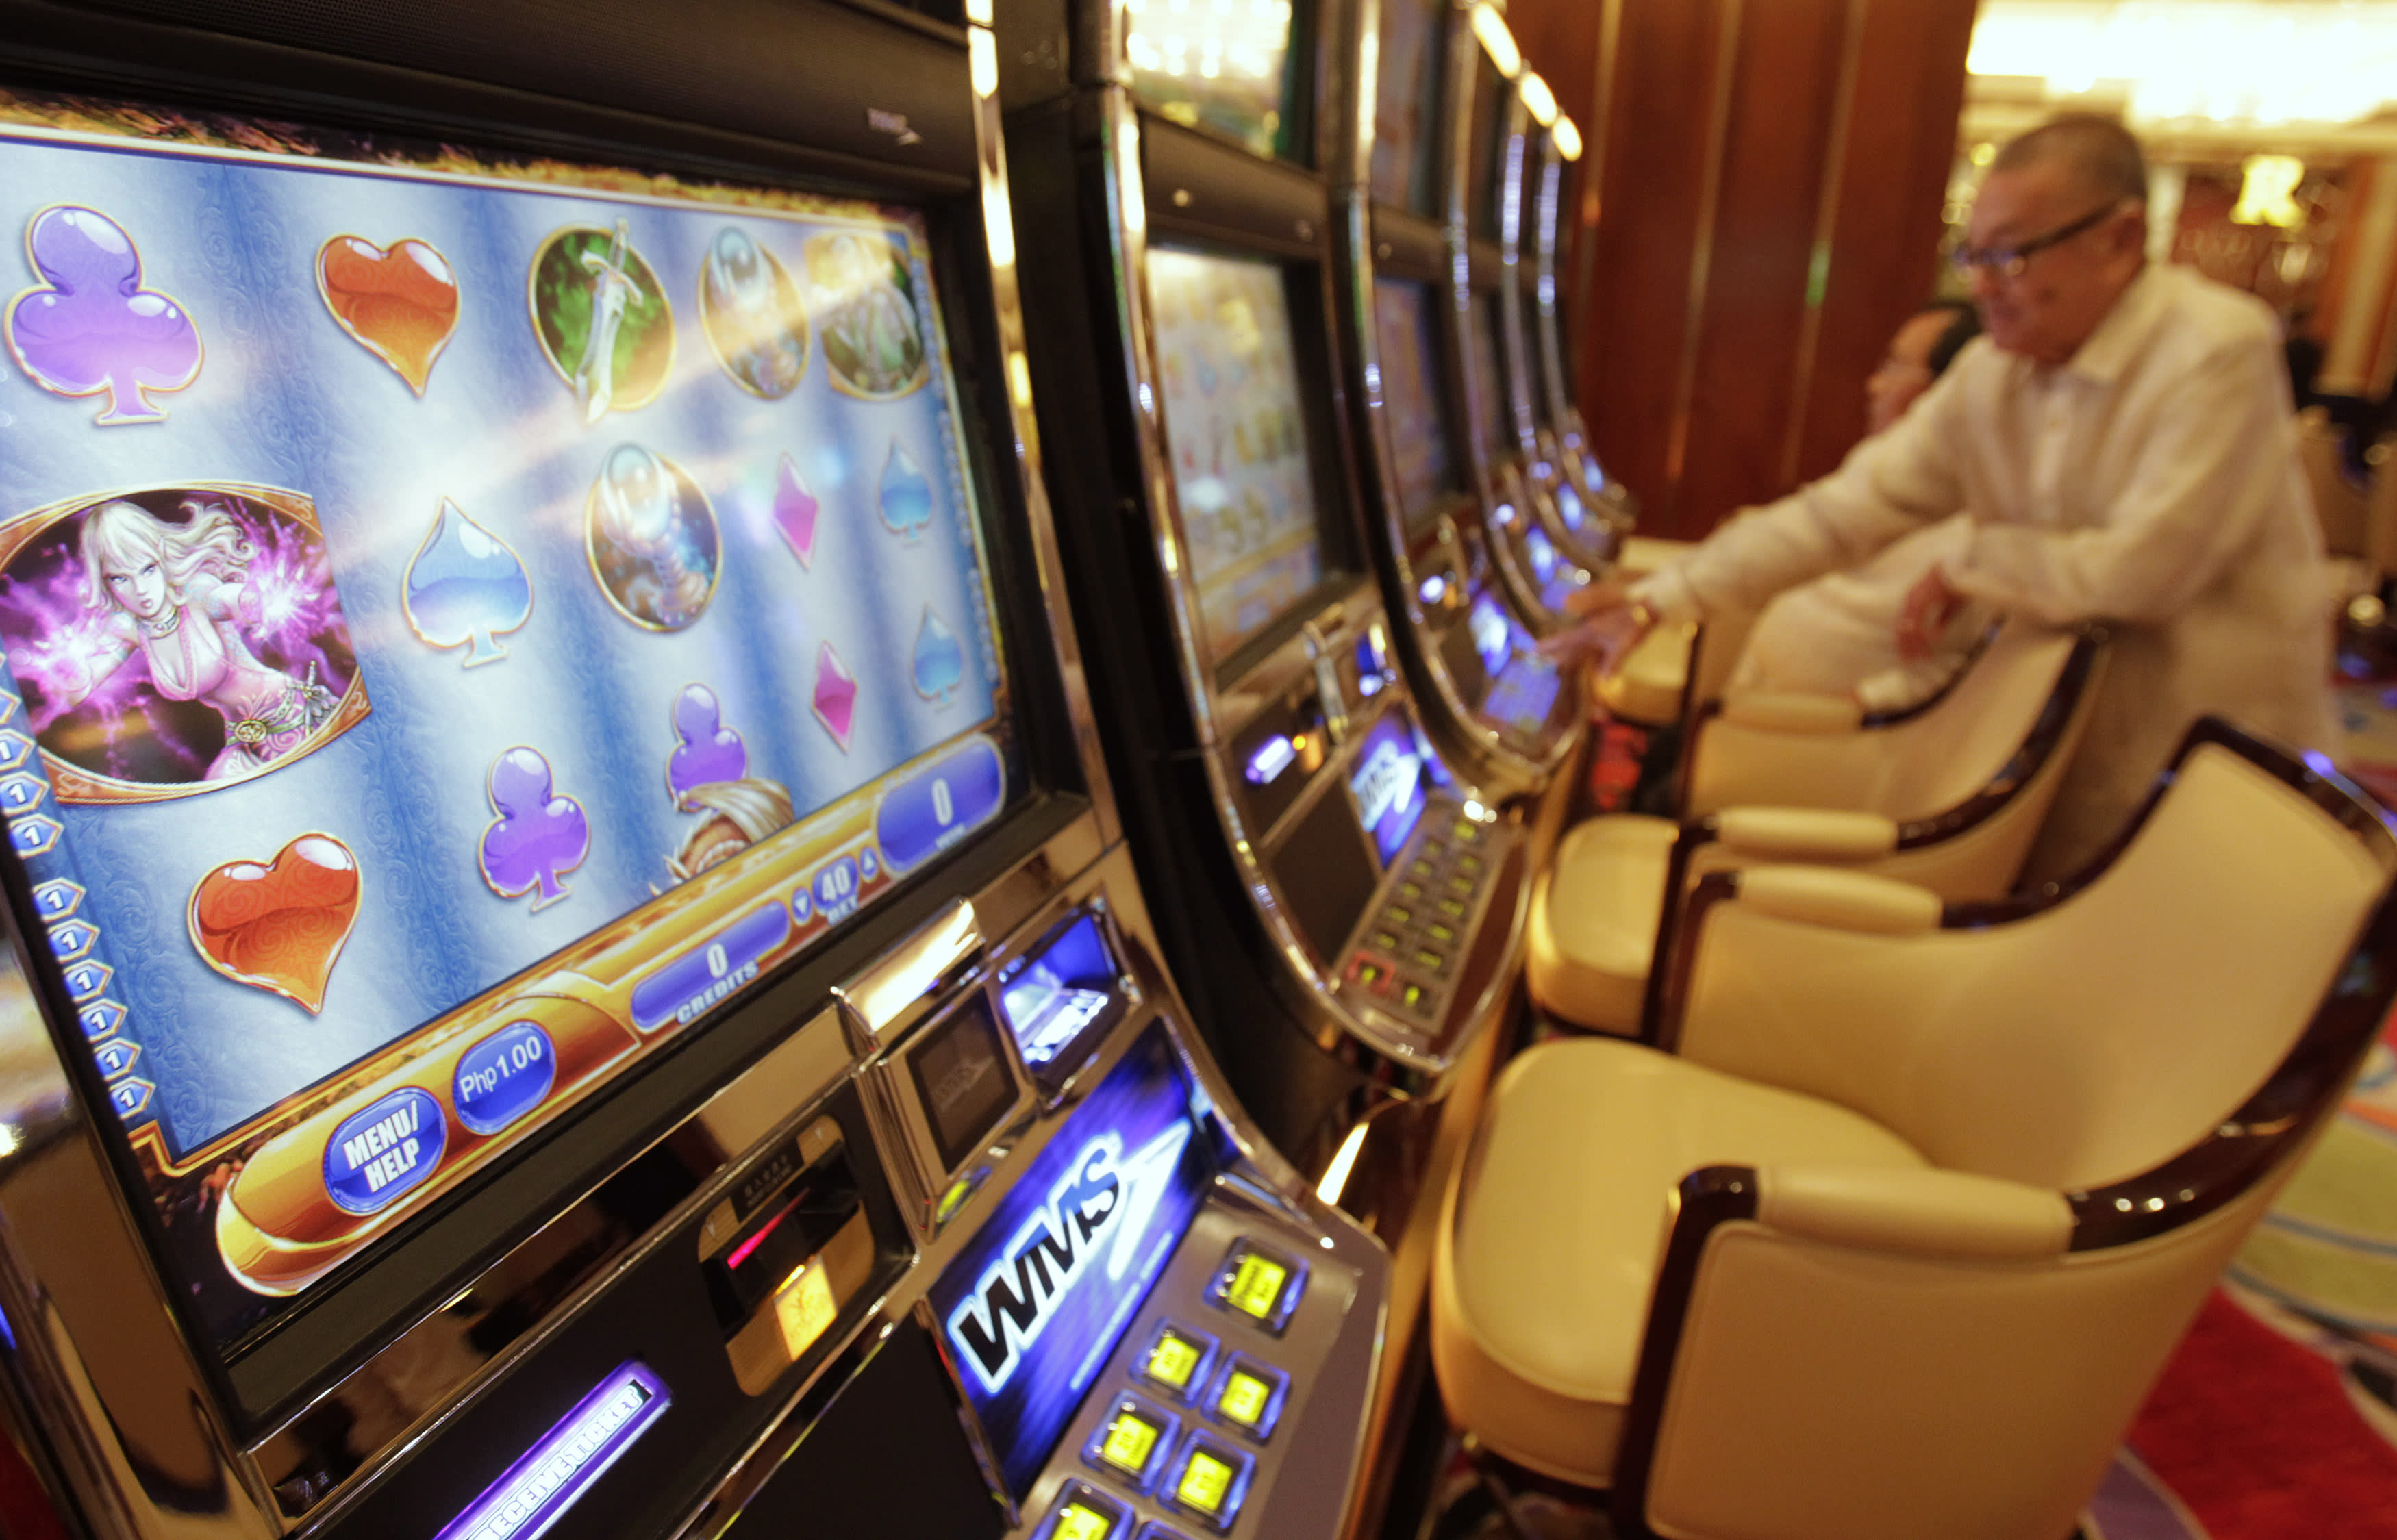 Philippines Sees Gross Gaming Revenue Rising 9 4 To 3 57bn In 2018 Nikkei Asia